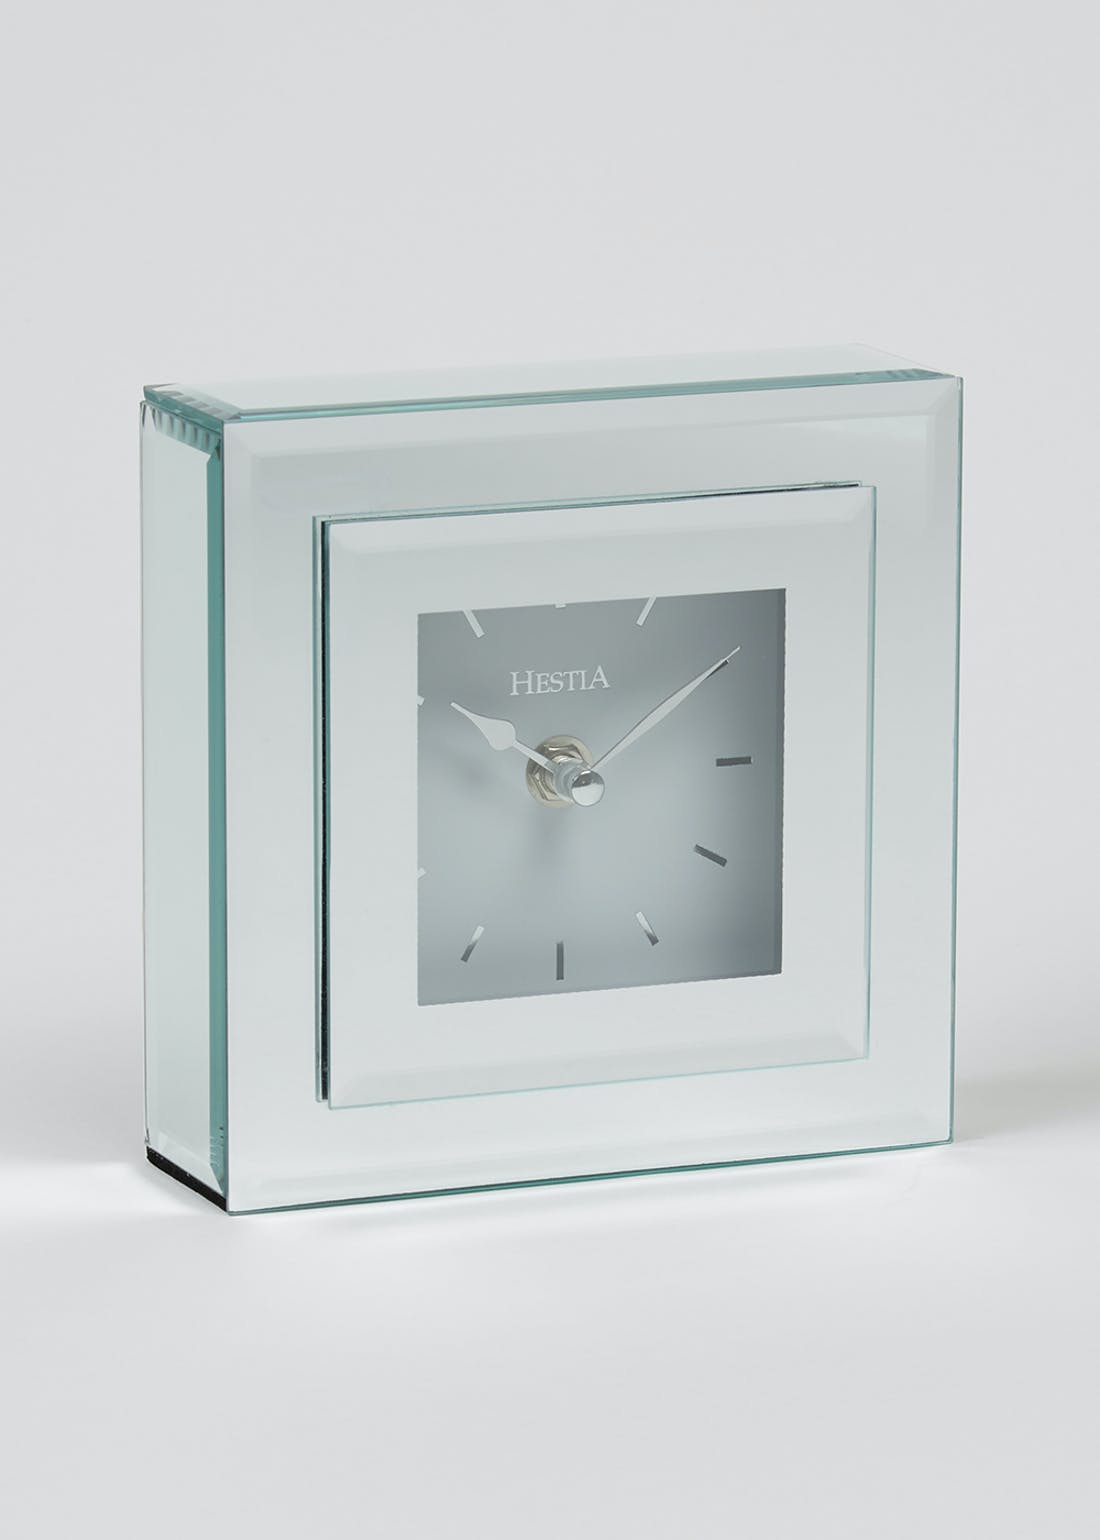 Mirrored Clock (15cm x 13cm x 5cm)